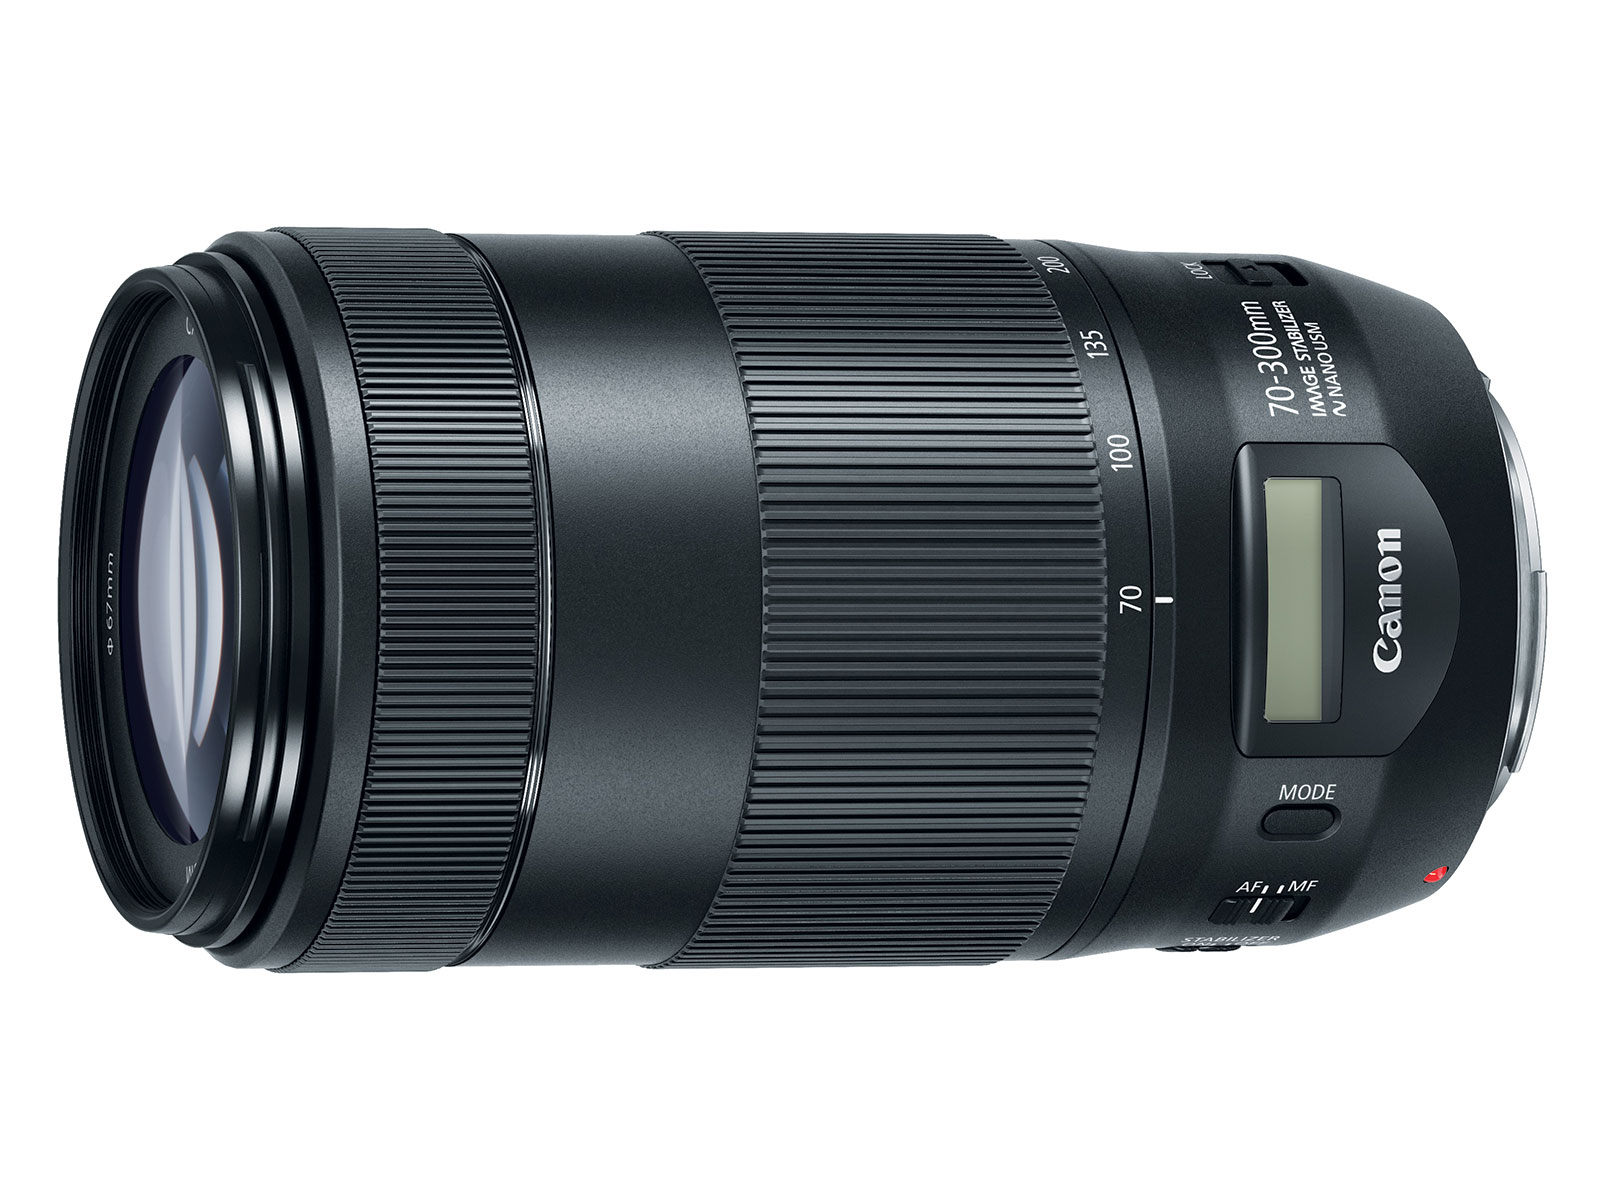 canon ef 70 300mm f 4 5 6 is ii usm lens announced daily camera news. Black Bedroom Furniture Sets. Home Design Ideas